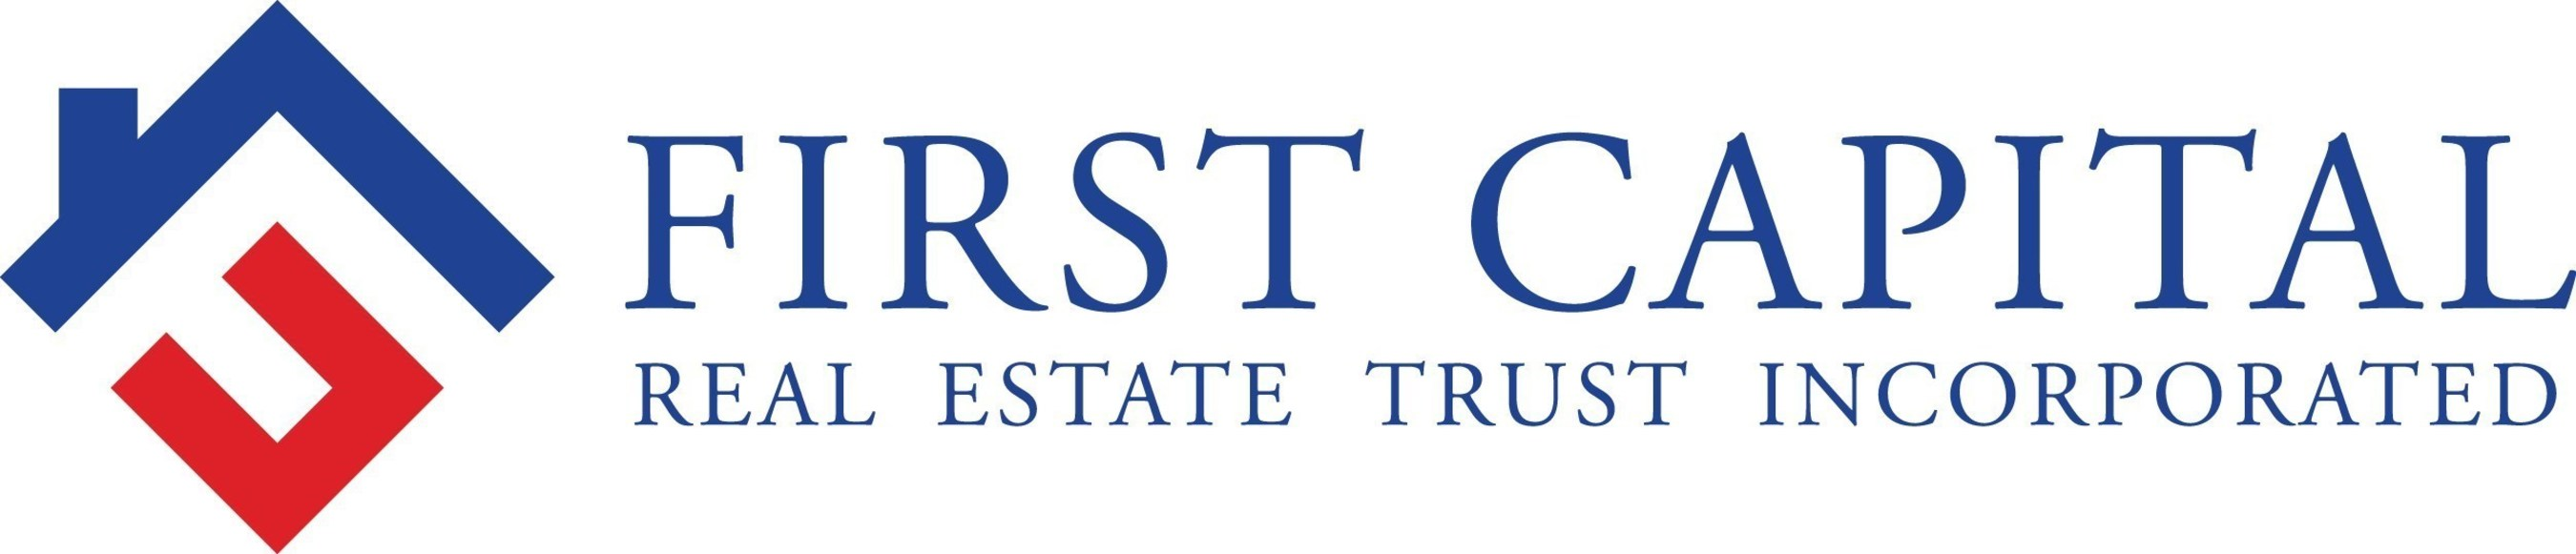 First Capital Real Estate Trust Incorporated